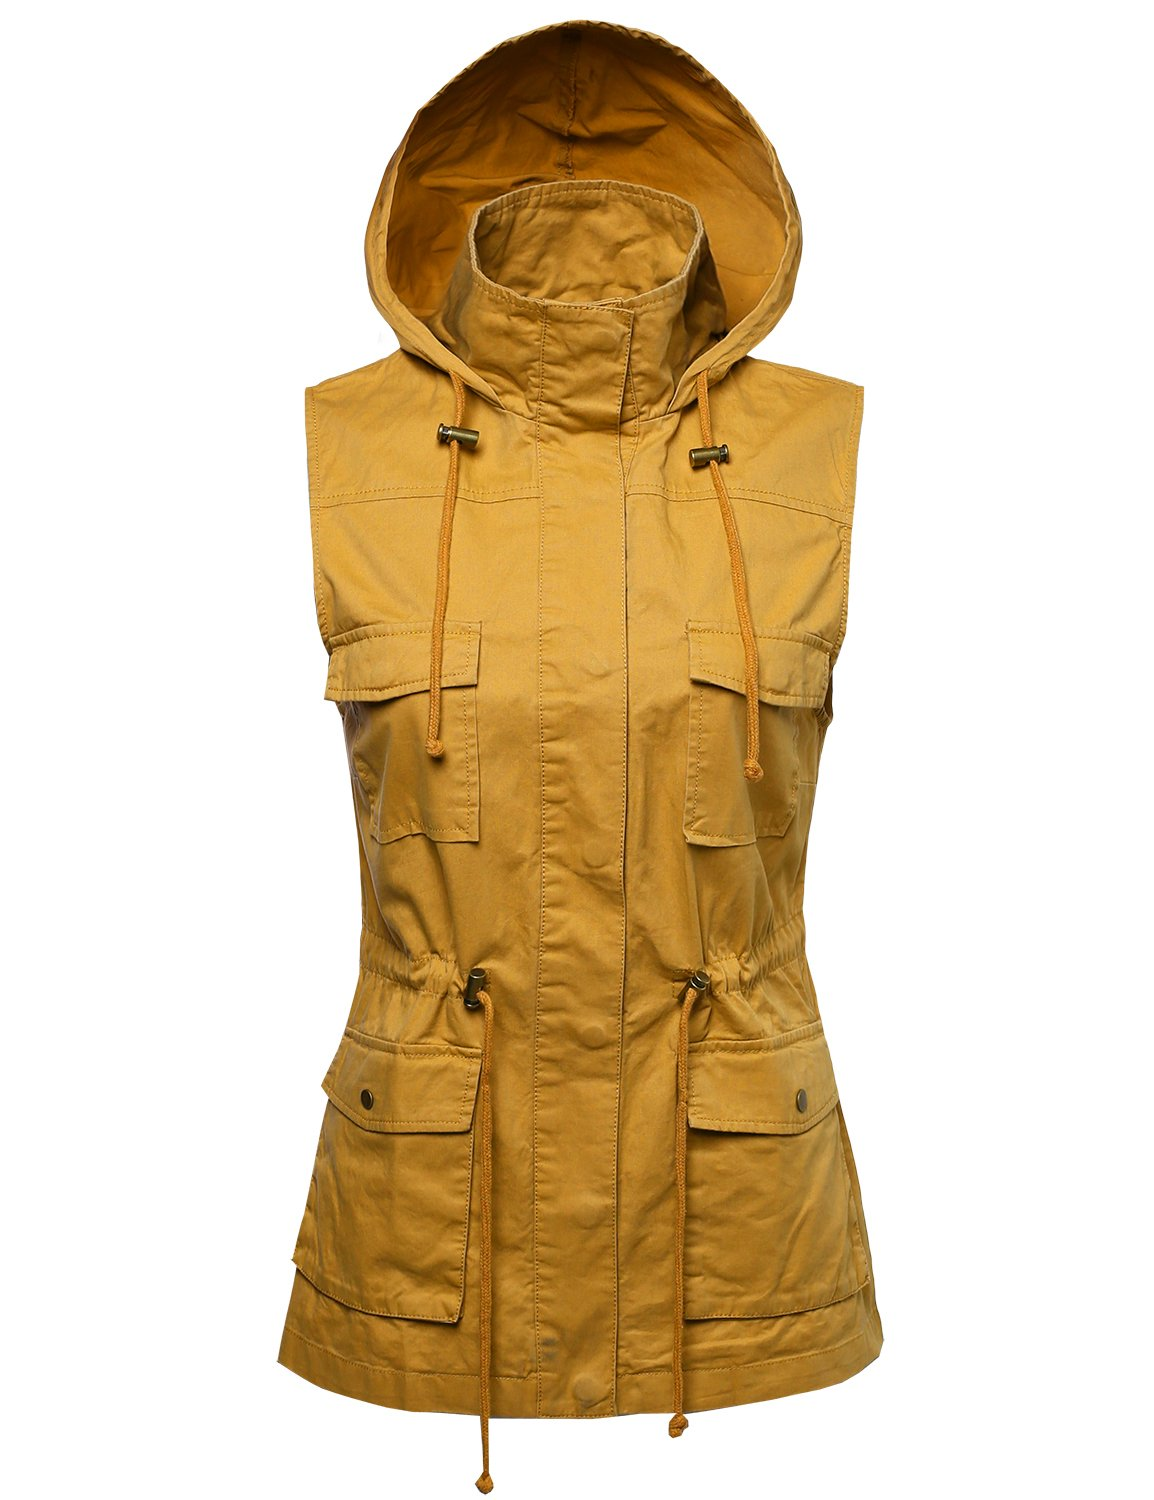 Sleeveless Safari Military Hooded Vest Jacket Mustard M by Made by Emma (Image #1)